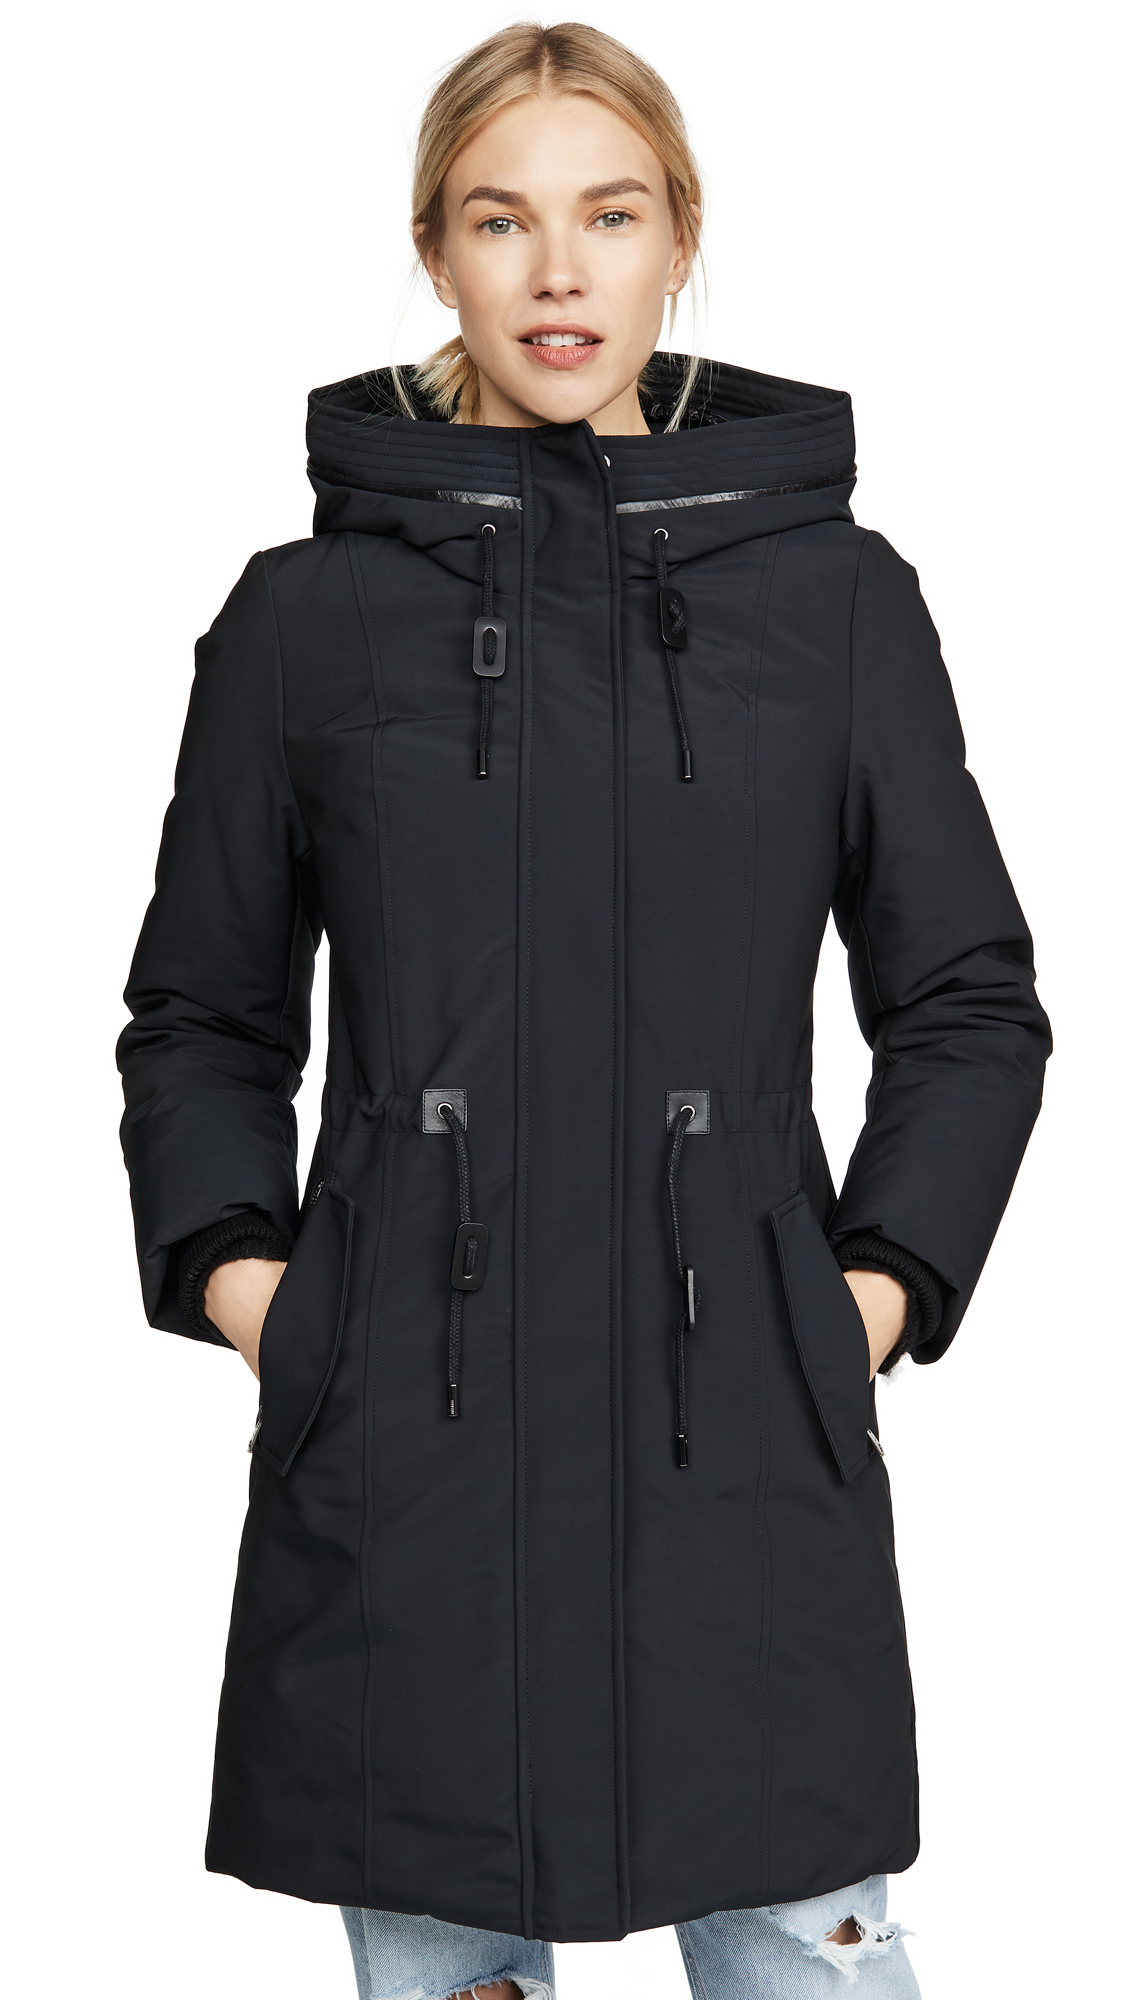 Buy Mackage Beckah Jacket online beautiful Mackage Jackets, Coats, Down Jackets